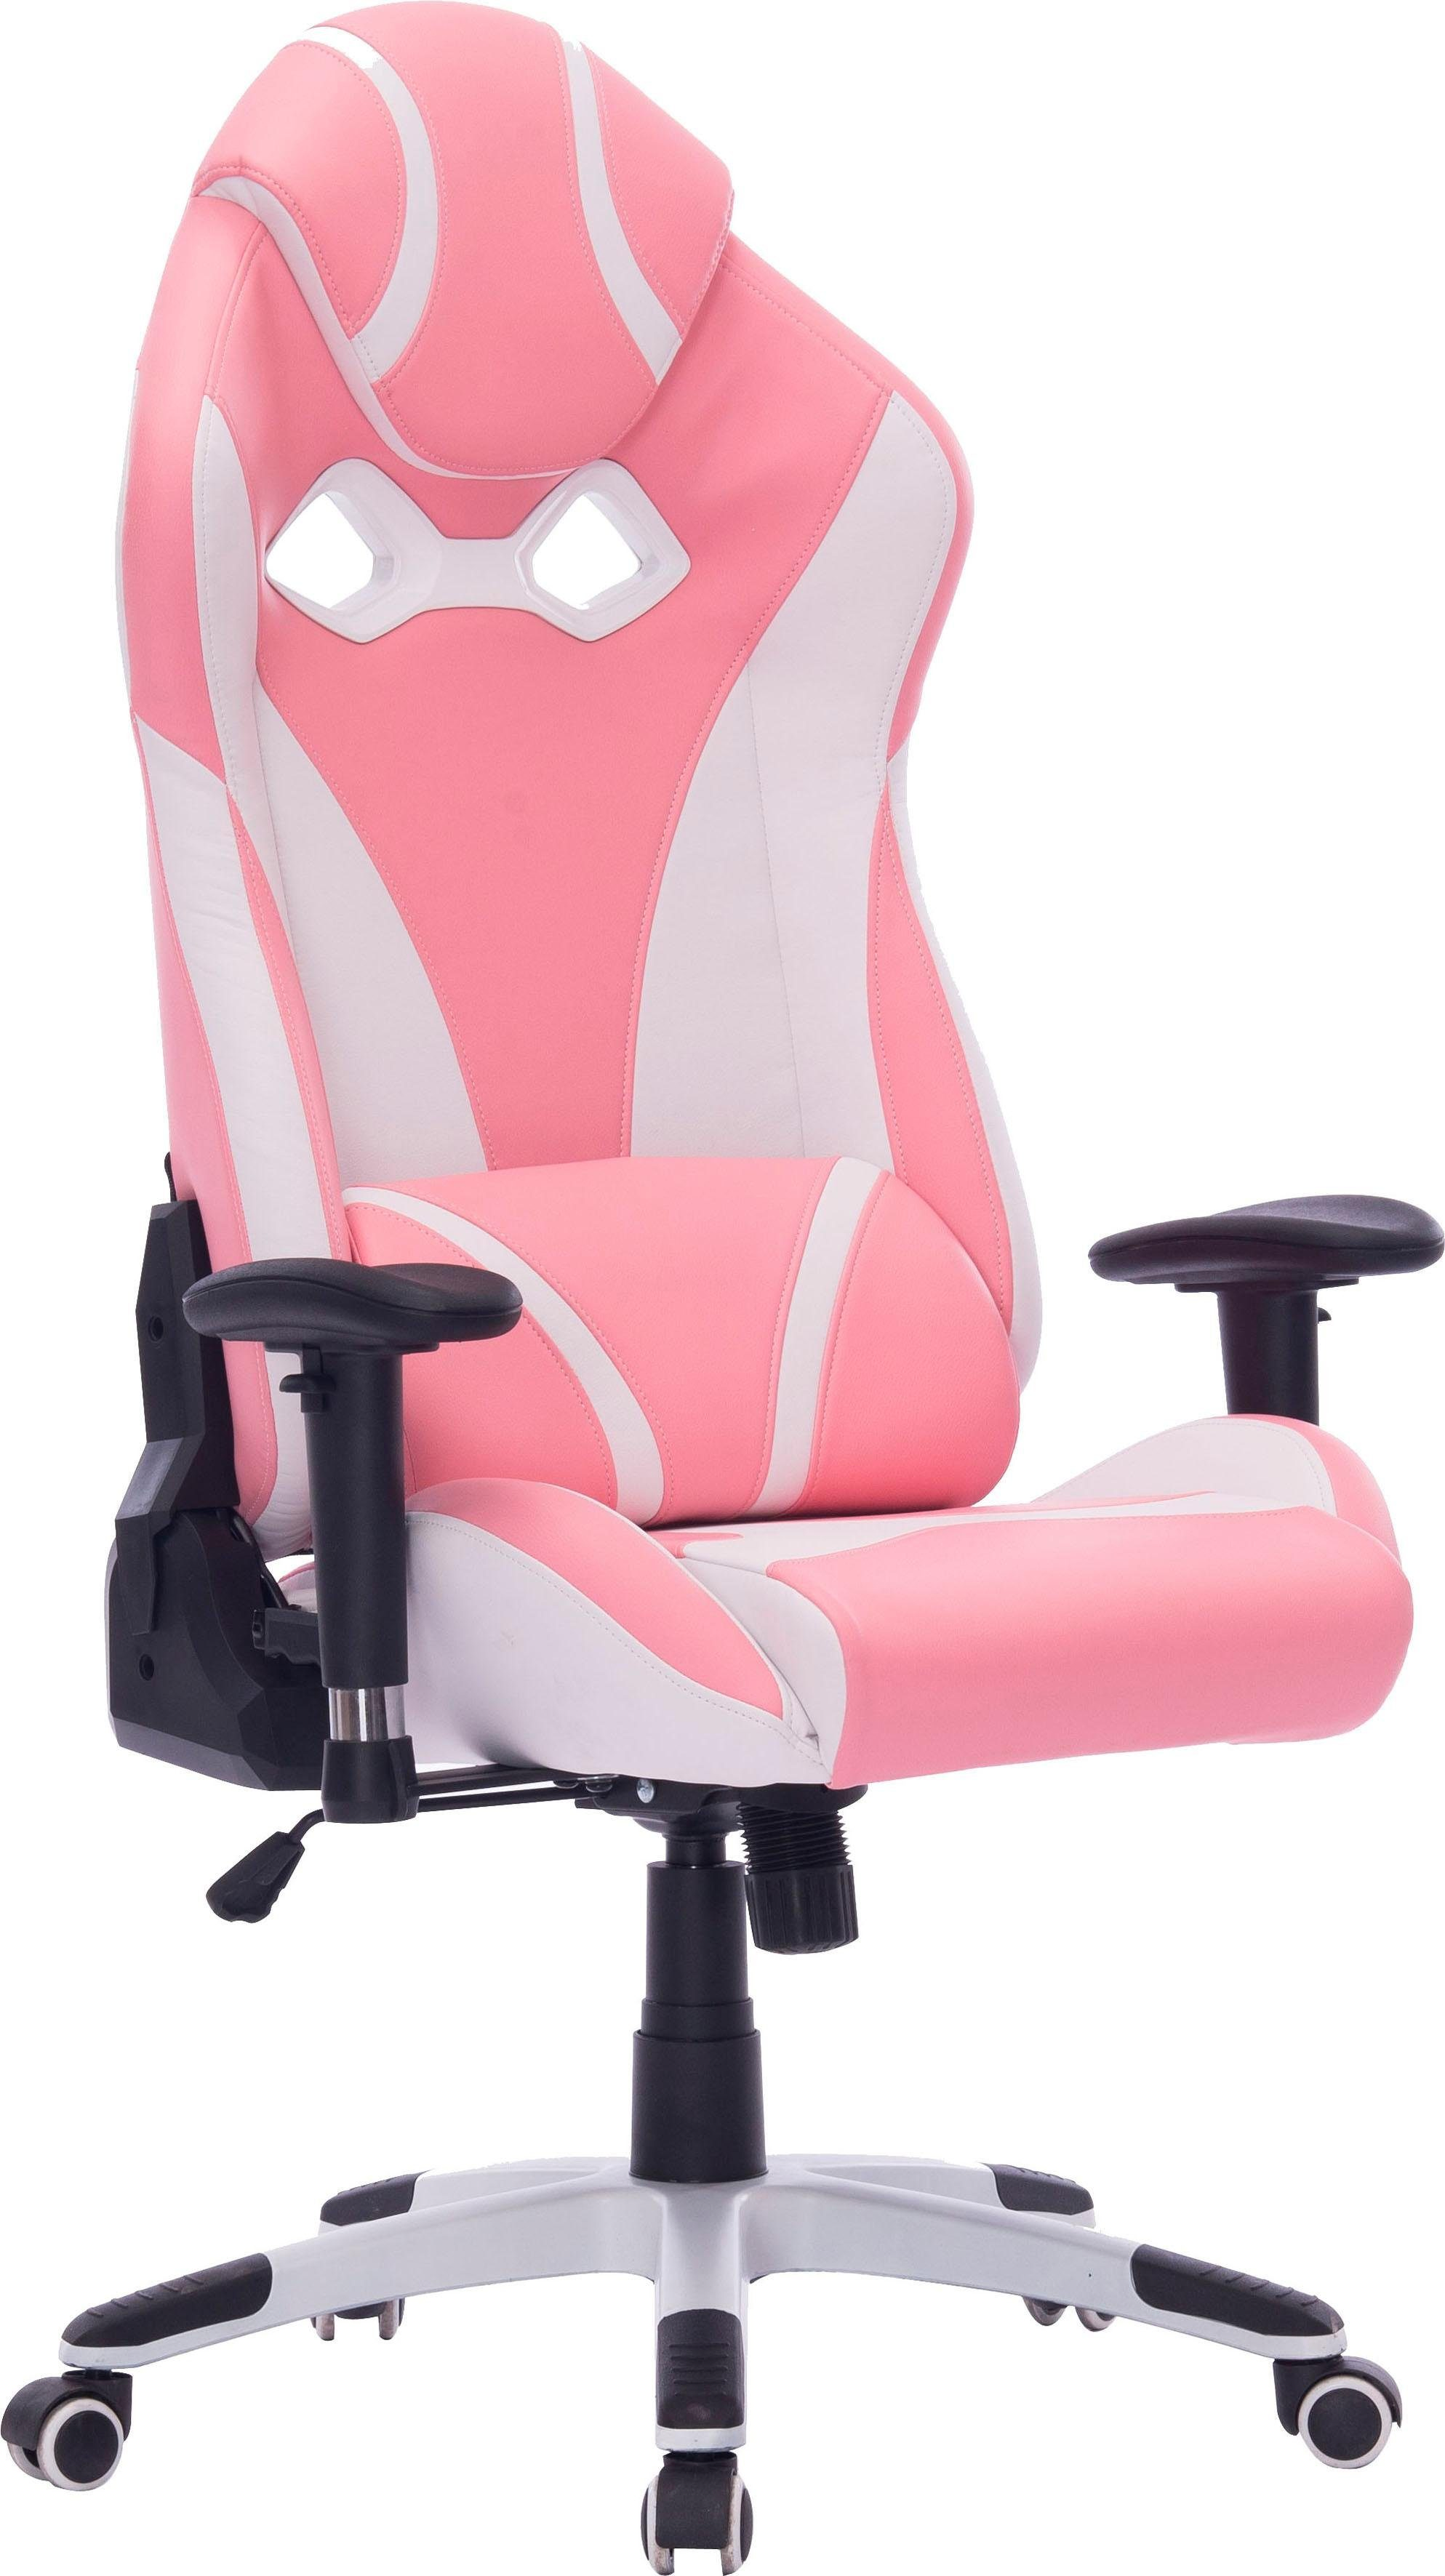 Gamer Sessel Test Gamer Sessel Online Kaufen